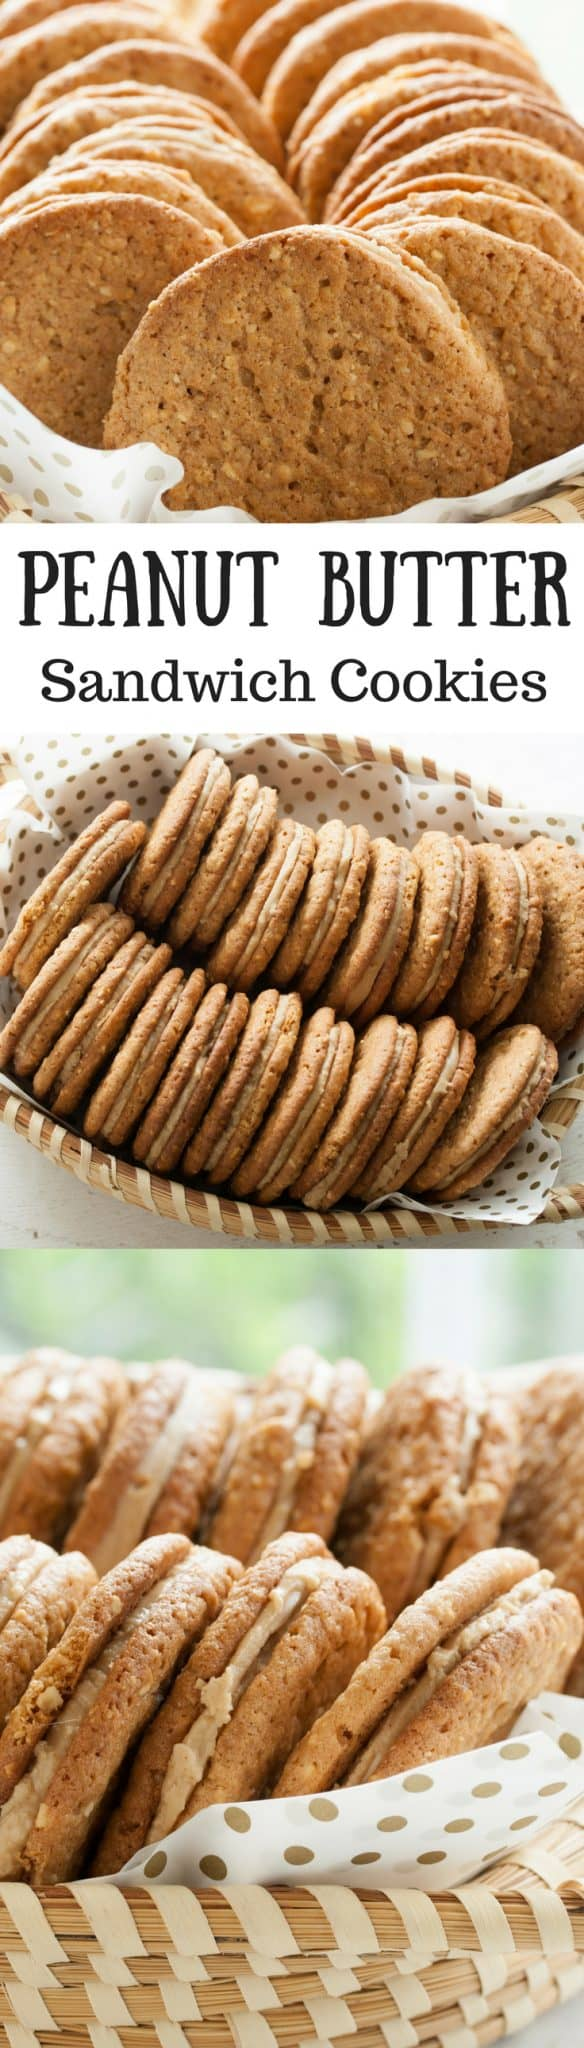 Peanut Butter Sandwich Cookies ~ What does it take to make a perfect peanut butter sandwich cookie? These cookies have just the right about of crispy crunch without crumbling, and a smooth, sweet, creamy filling that doesn't ooze out the sides when you take a bite. And these Peanut Butter Sandwich Cookies have a robust peanut flavor. It is perfectly delicious. www.savingdessert.com | peanut butter cookies | peanut butter sandwich cookies